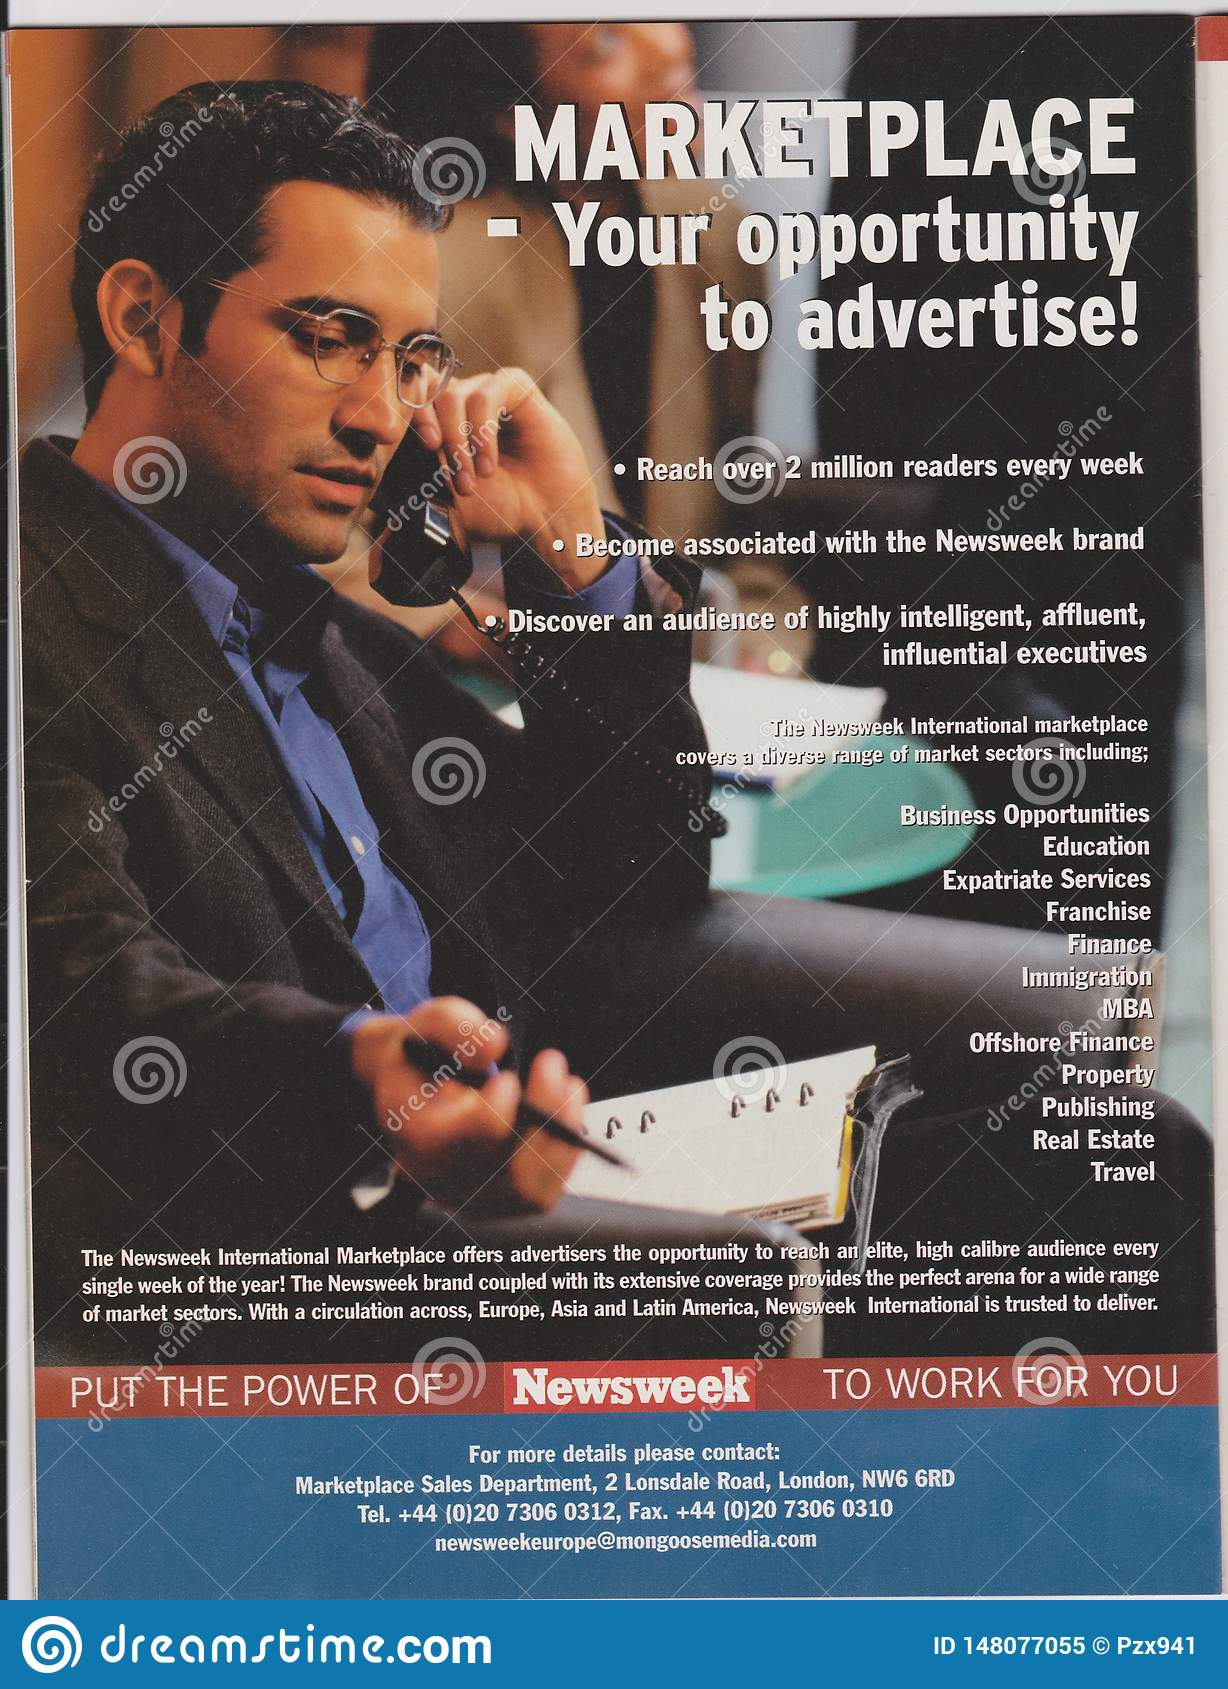 Poster advertising of Newsweek Marketplace in magazine from October 2005, your opportunity to advertise! slogan